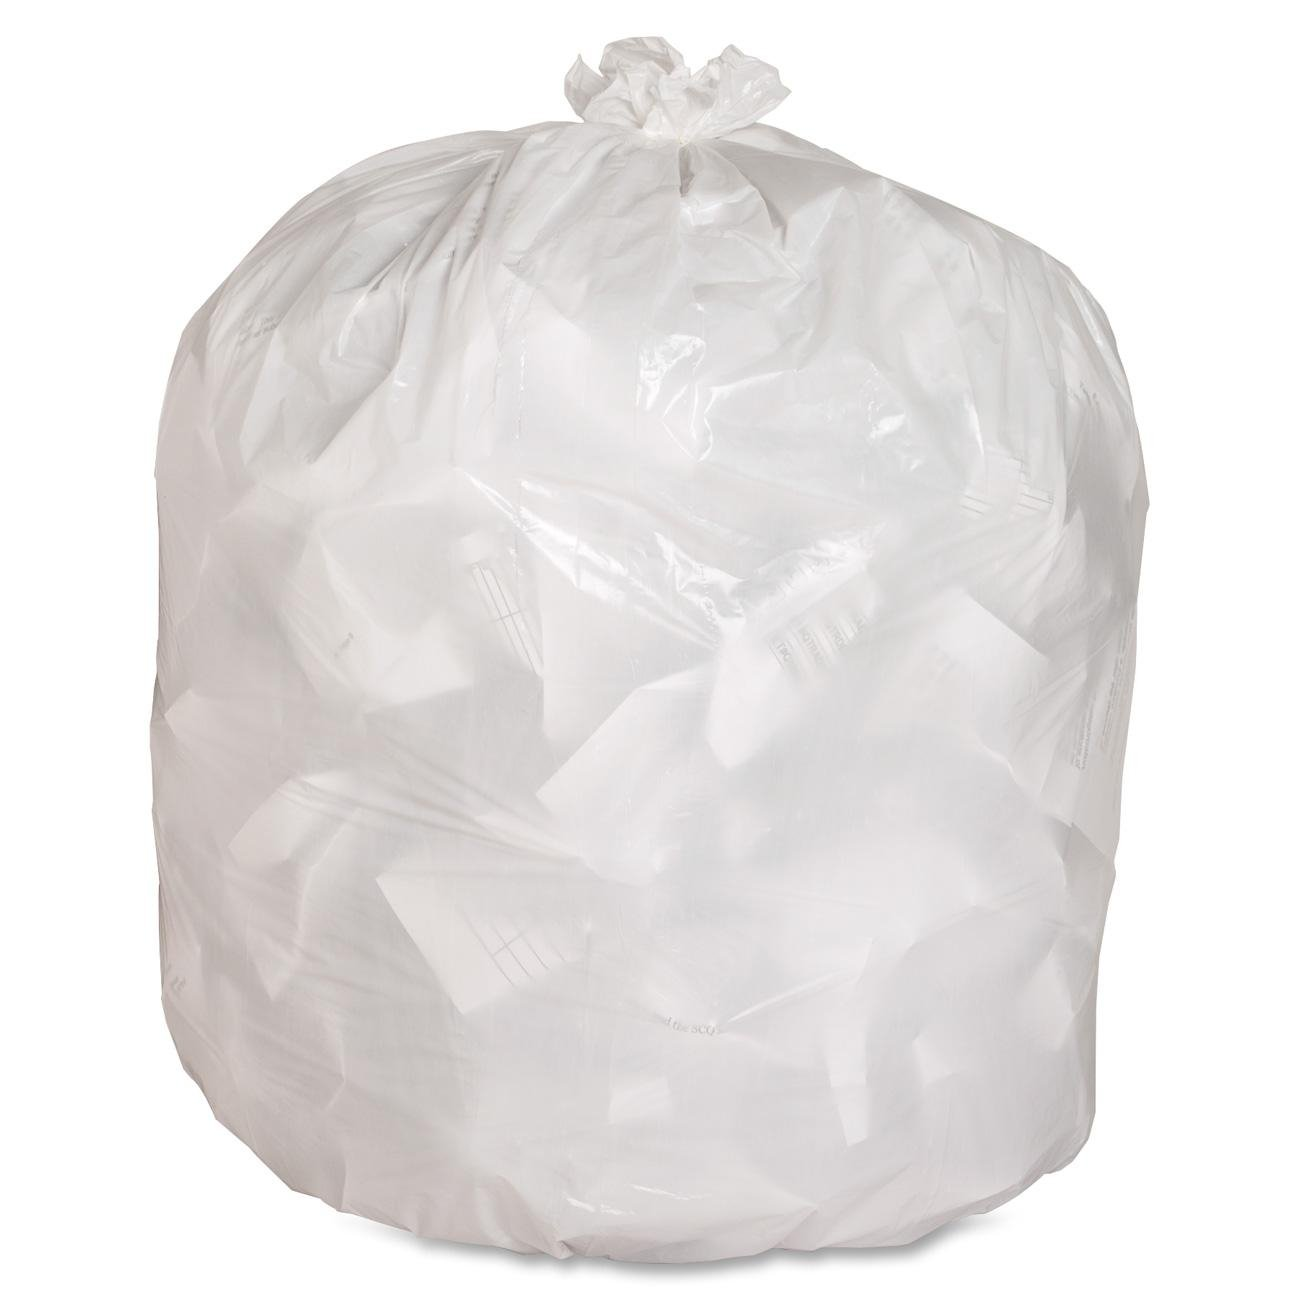 Are Kitchen Trash Bags Food Grade